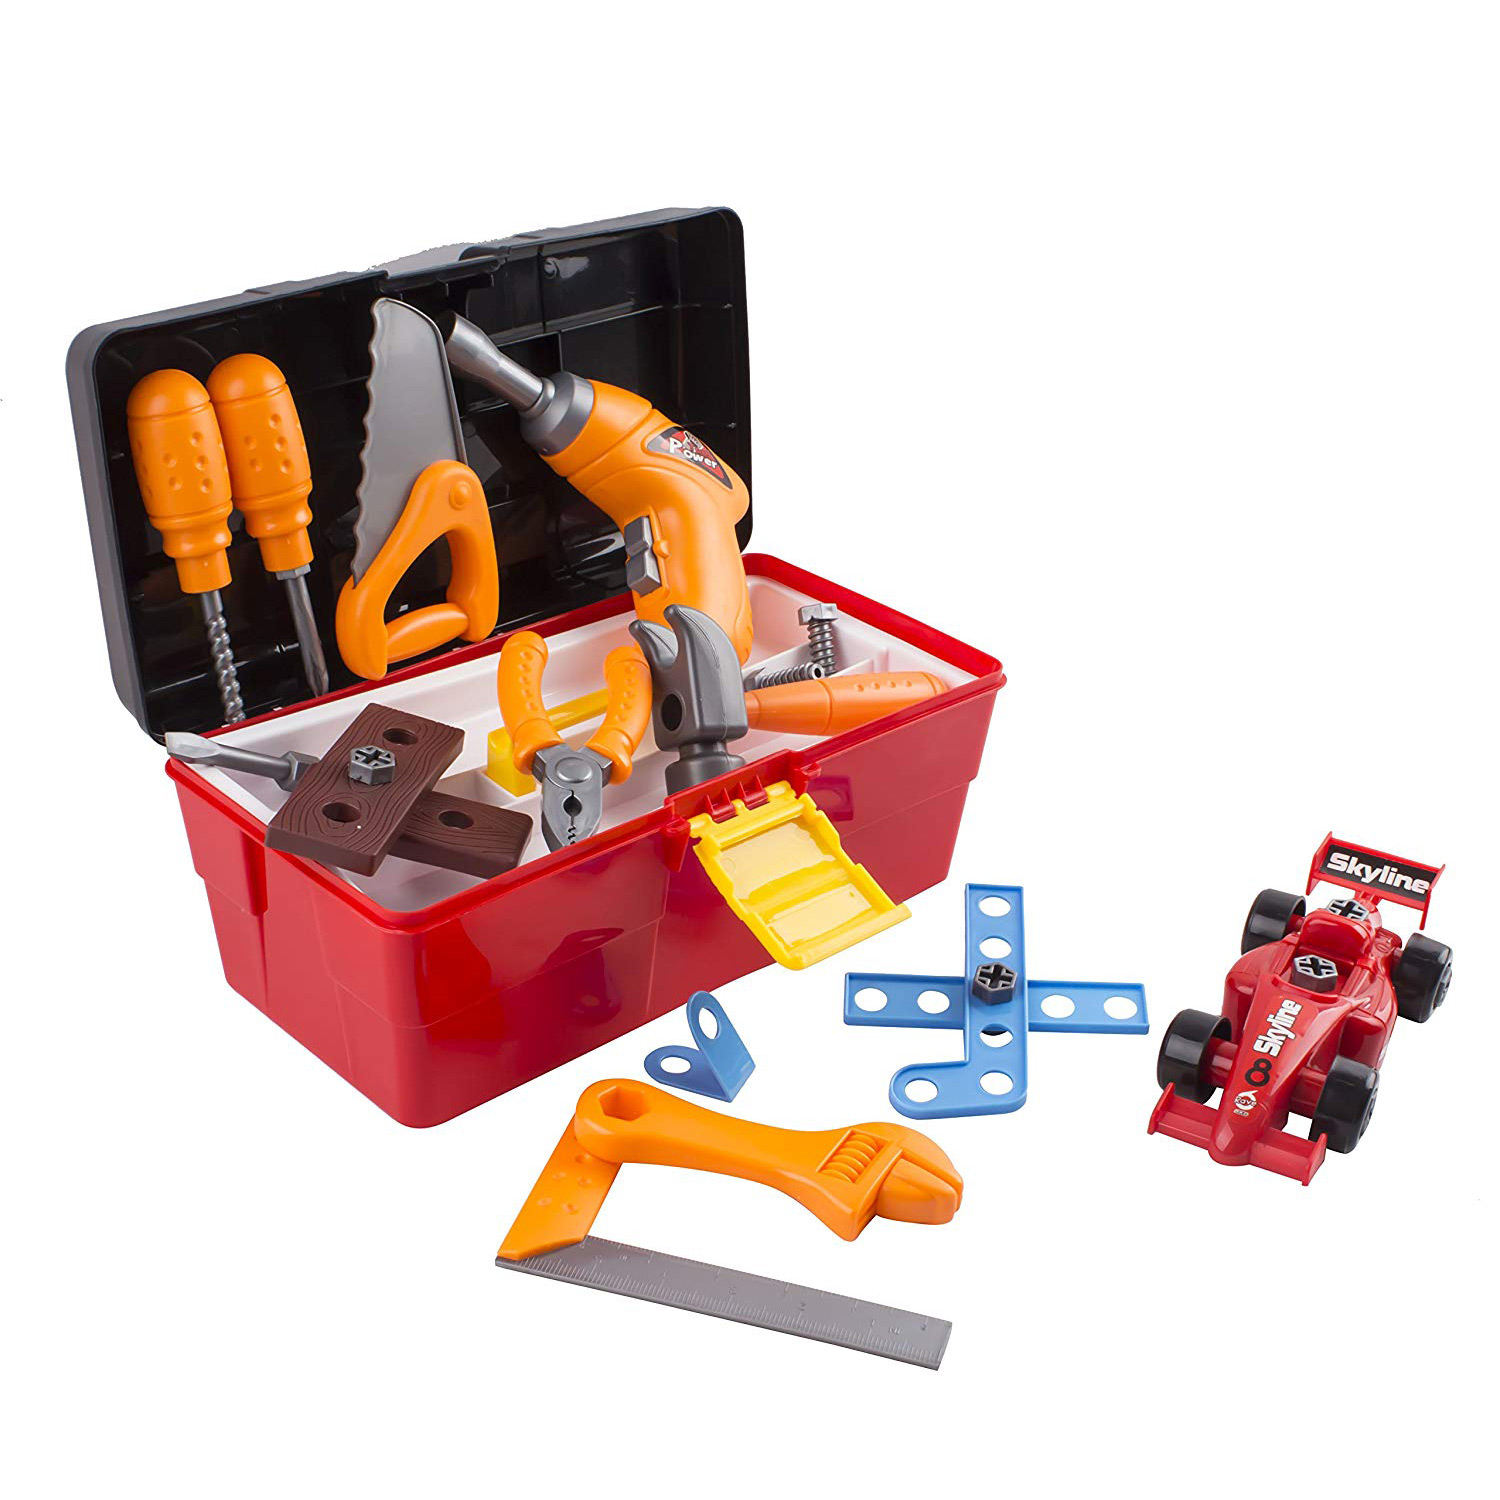 44 Piece Toy Tool Set With Construction Kit Accessories Portable Realistic Tools Box Including Electric Drill Hammer Wrench Screwdriver F1 Car Perfect For Boys Children's Educational STEM Pretend Play